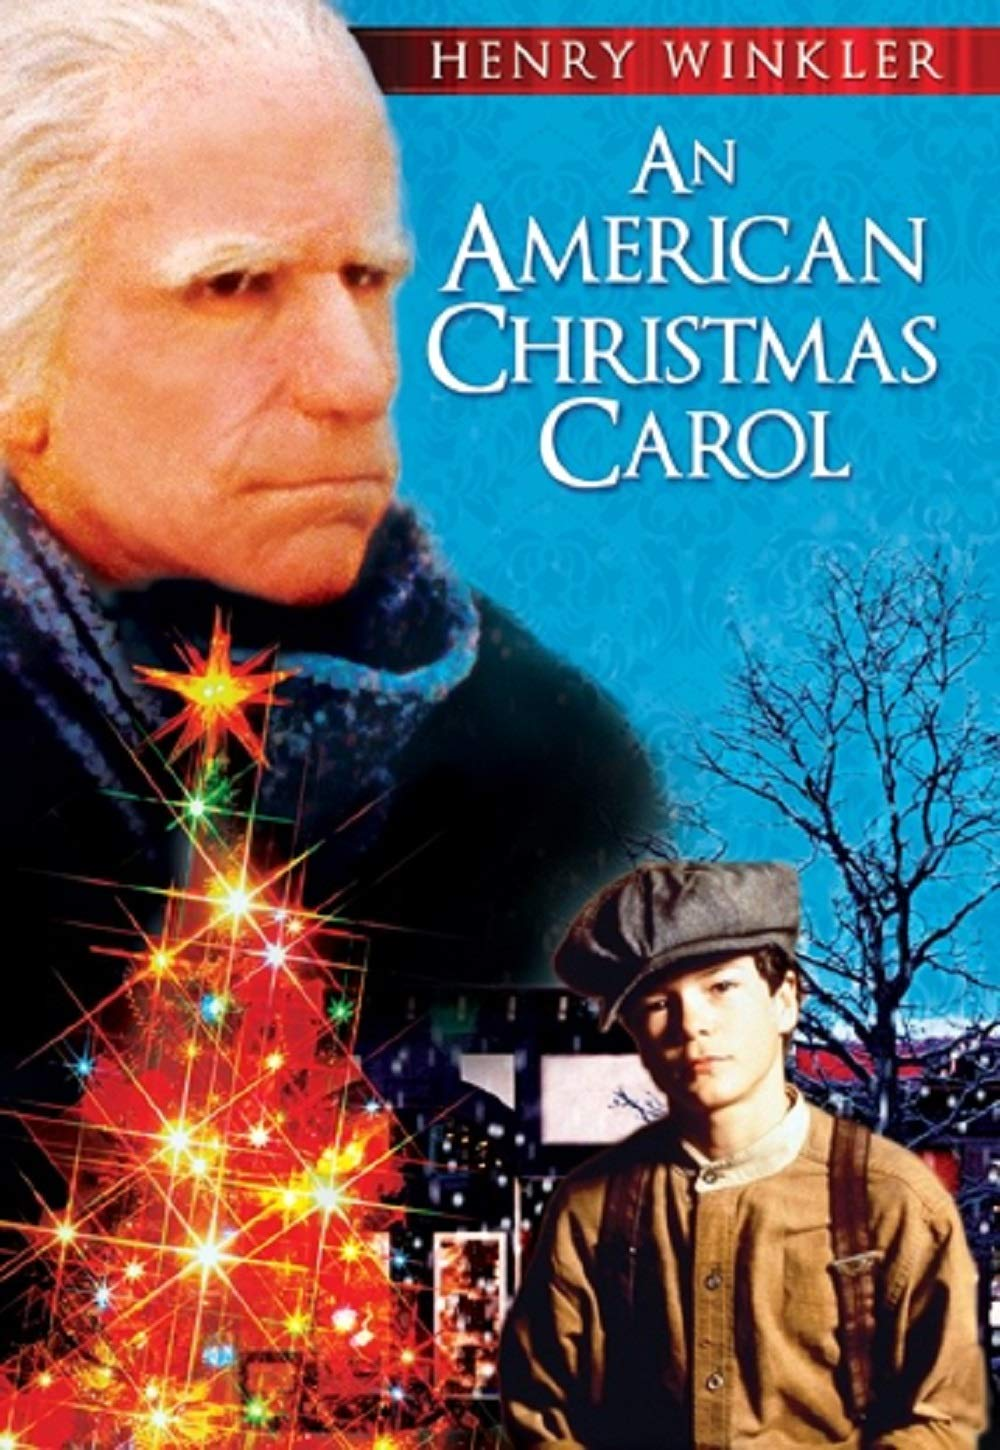 Amazon.com: An American Christmas Carol, actor Henry Winkler: Henry Winkler,  David Wayne, Chris Wiggins, R.H. Thomson, Ken Pogue, Eric Till, Stanley  Chase, Jon Slan, Jerome Coopersmith: Movies & TV